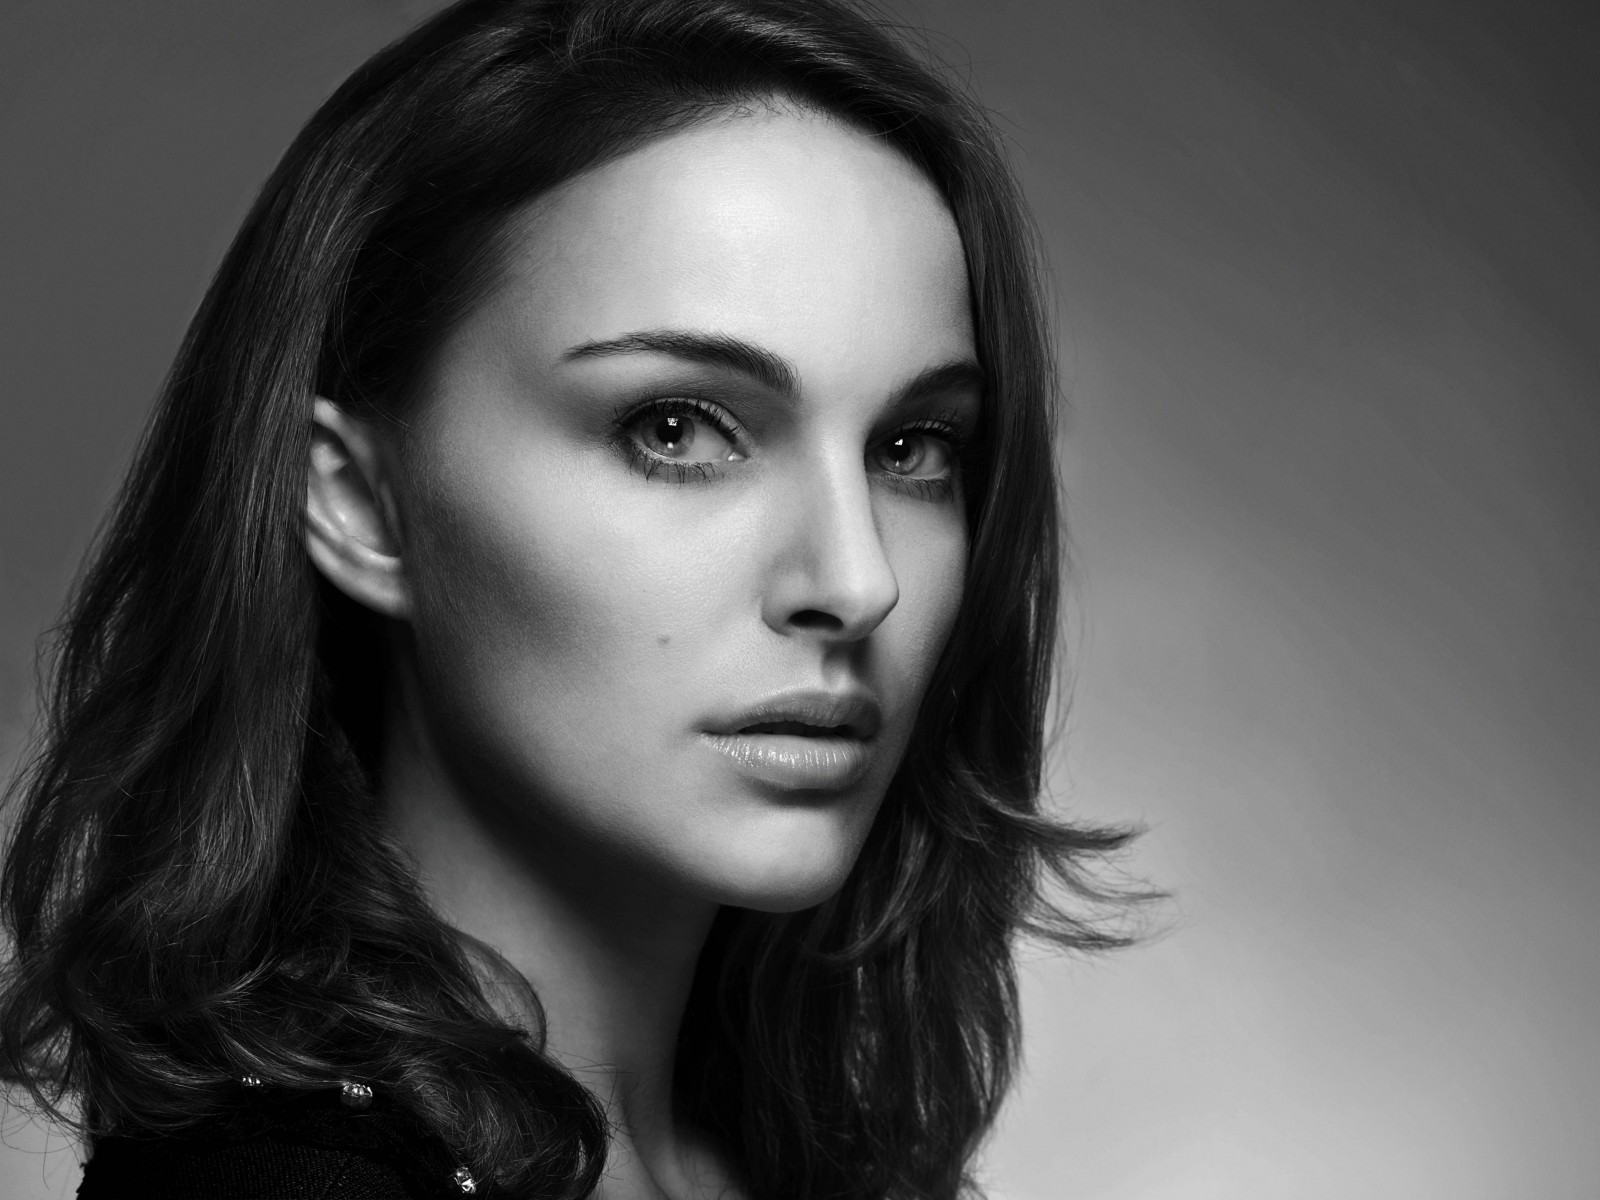 Natalie Portman in Black & White Wallpaper for Desktop 1600x1200